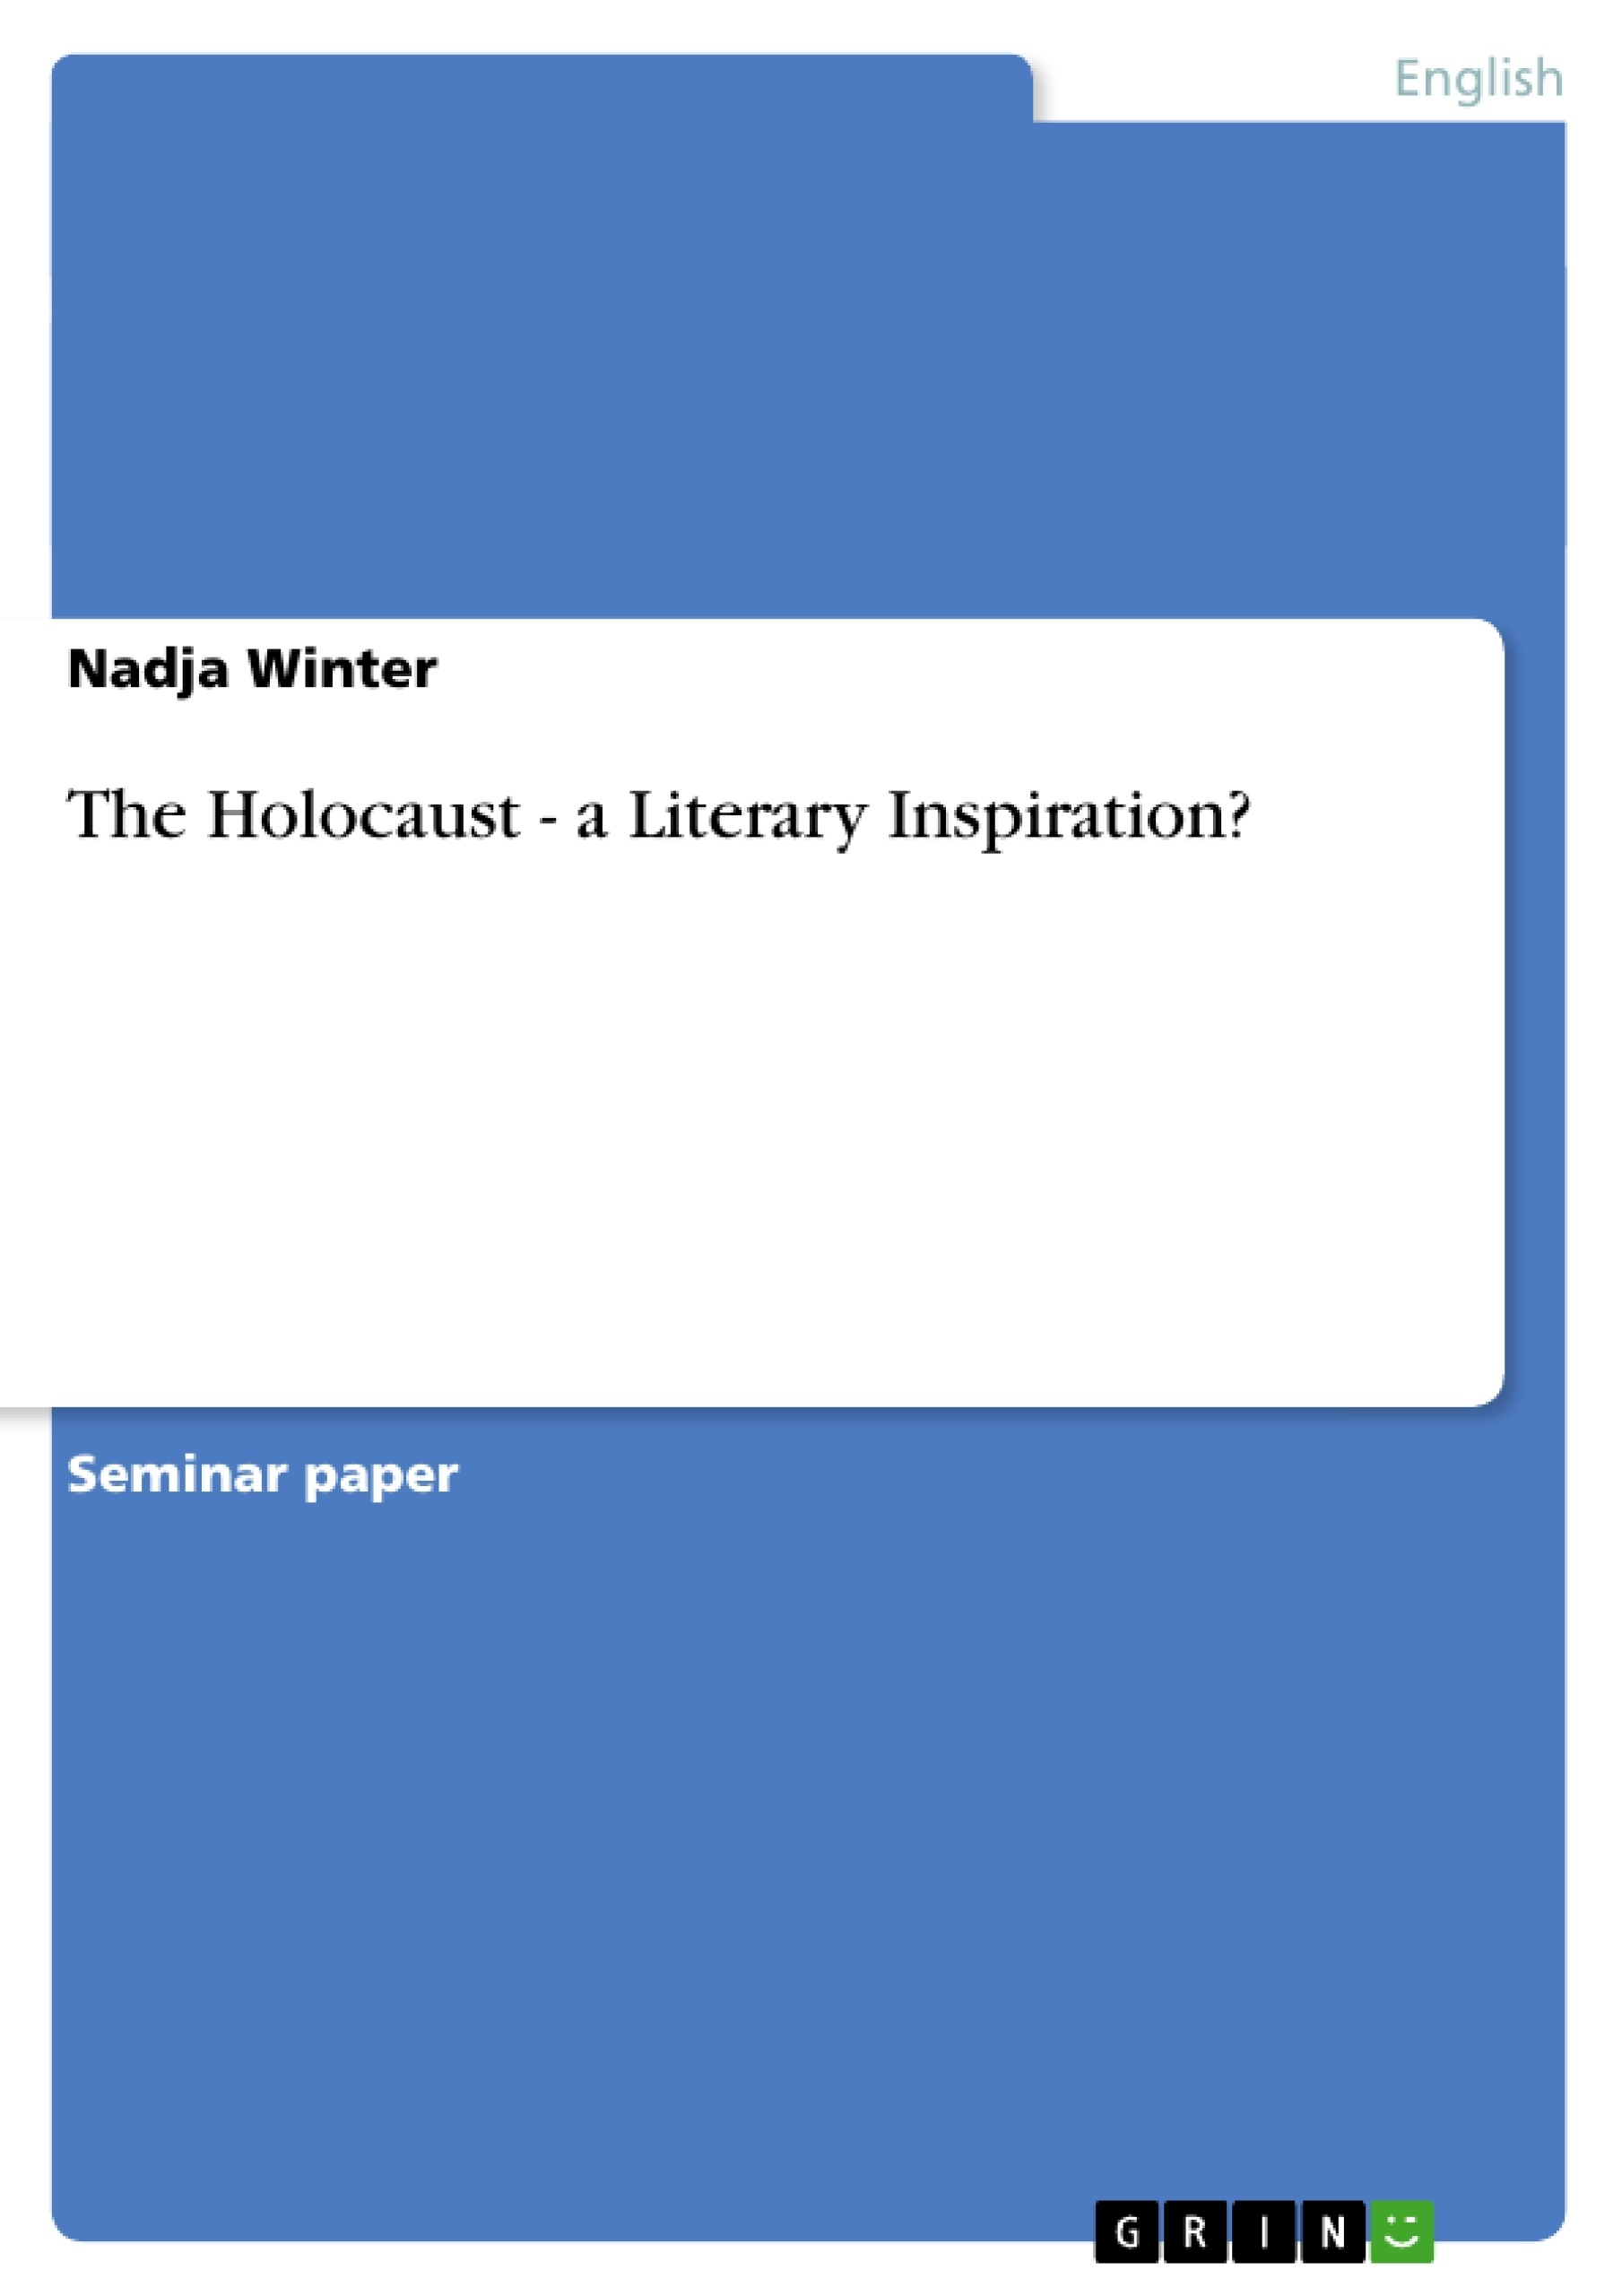 Title: The Holocaust - a Literary Inspiration?